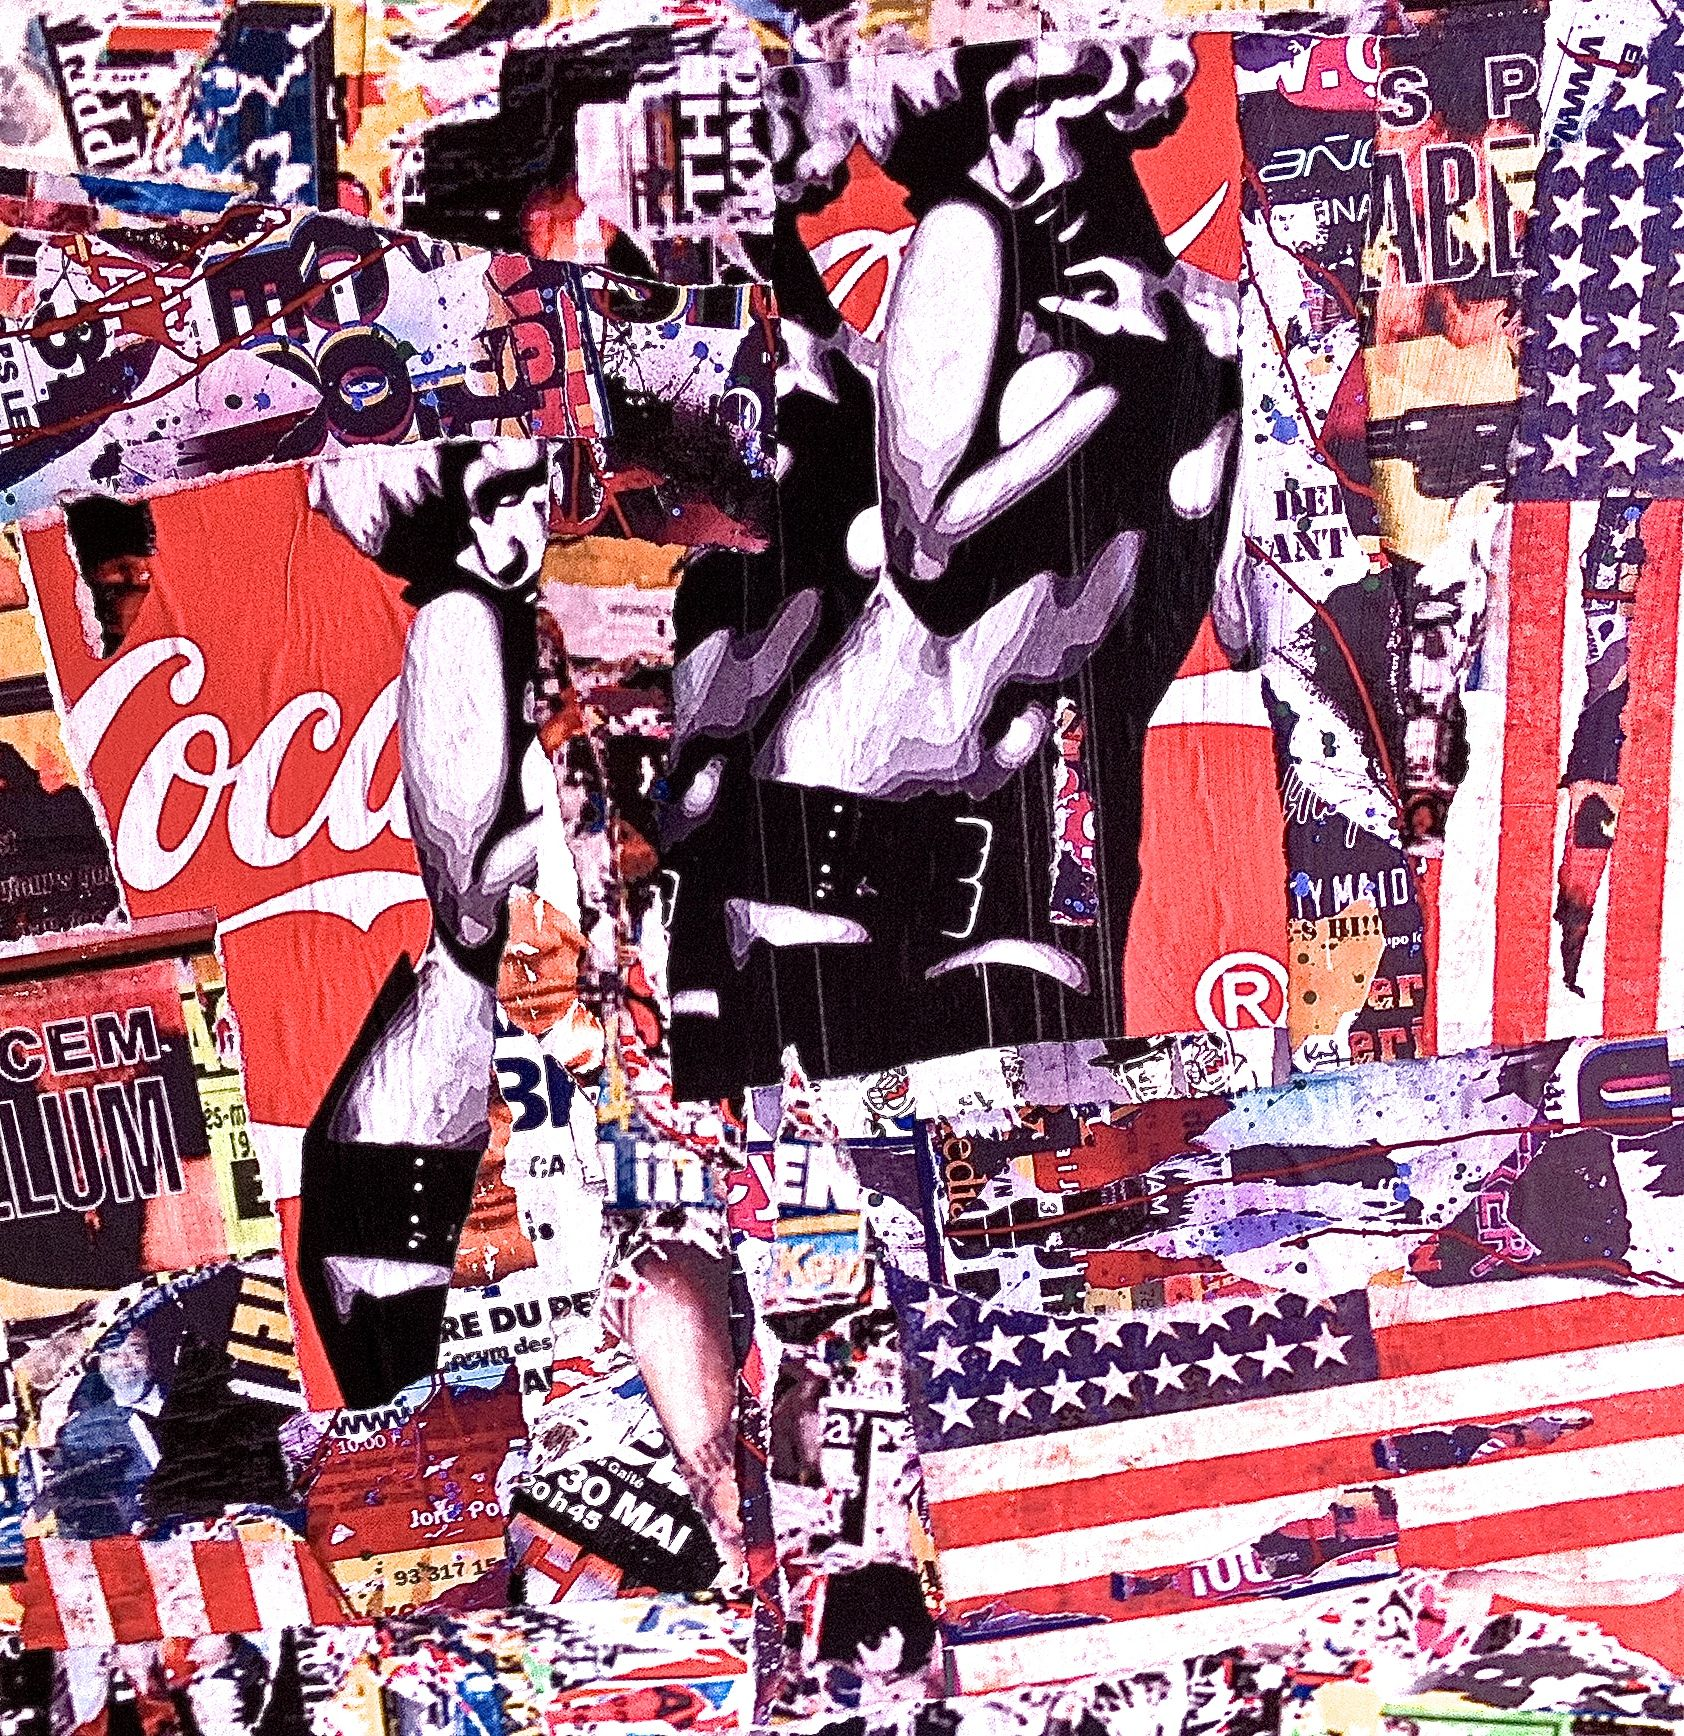 coca cola usa street art pop art collage affiche new york andy warhol basquiat. Black Bedroom Furniture Sets. Home Design Ideas